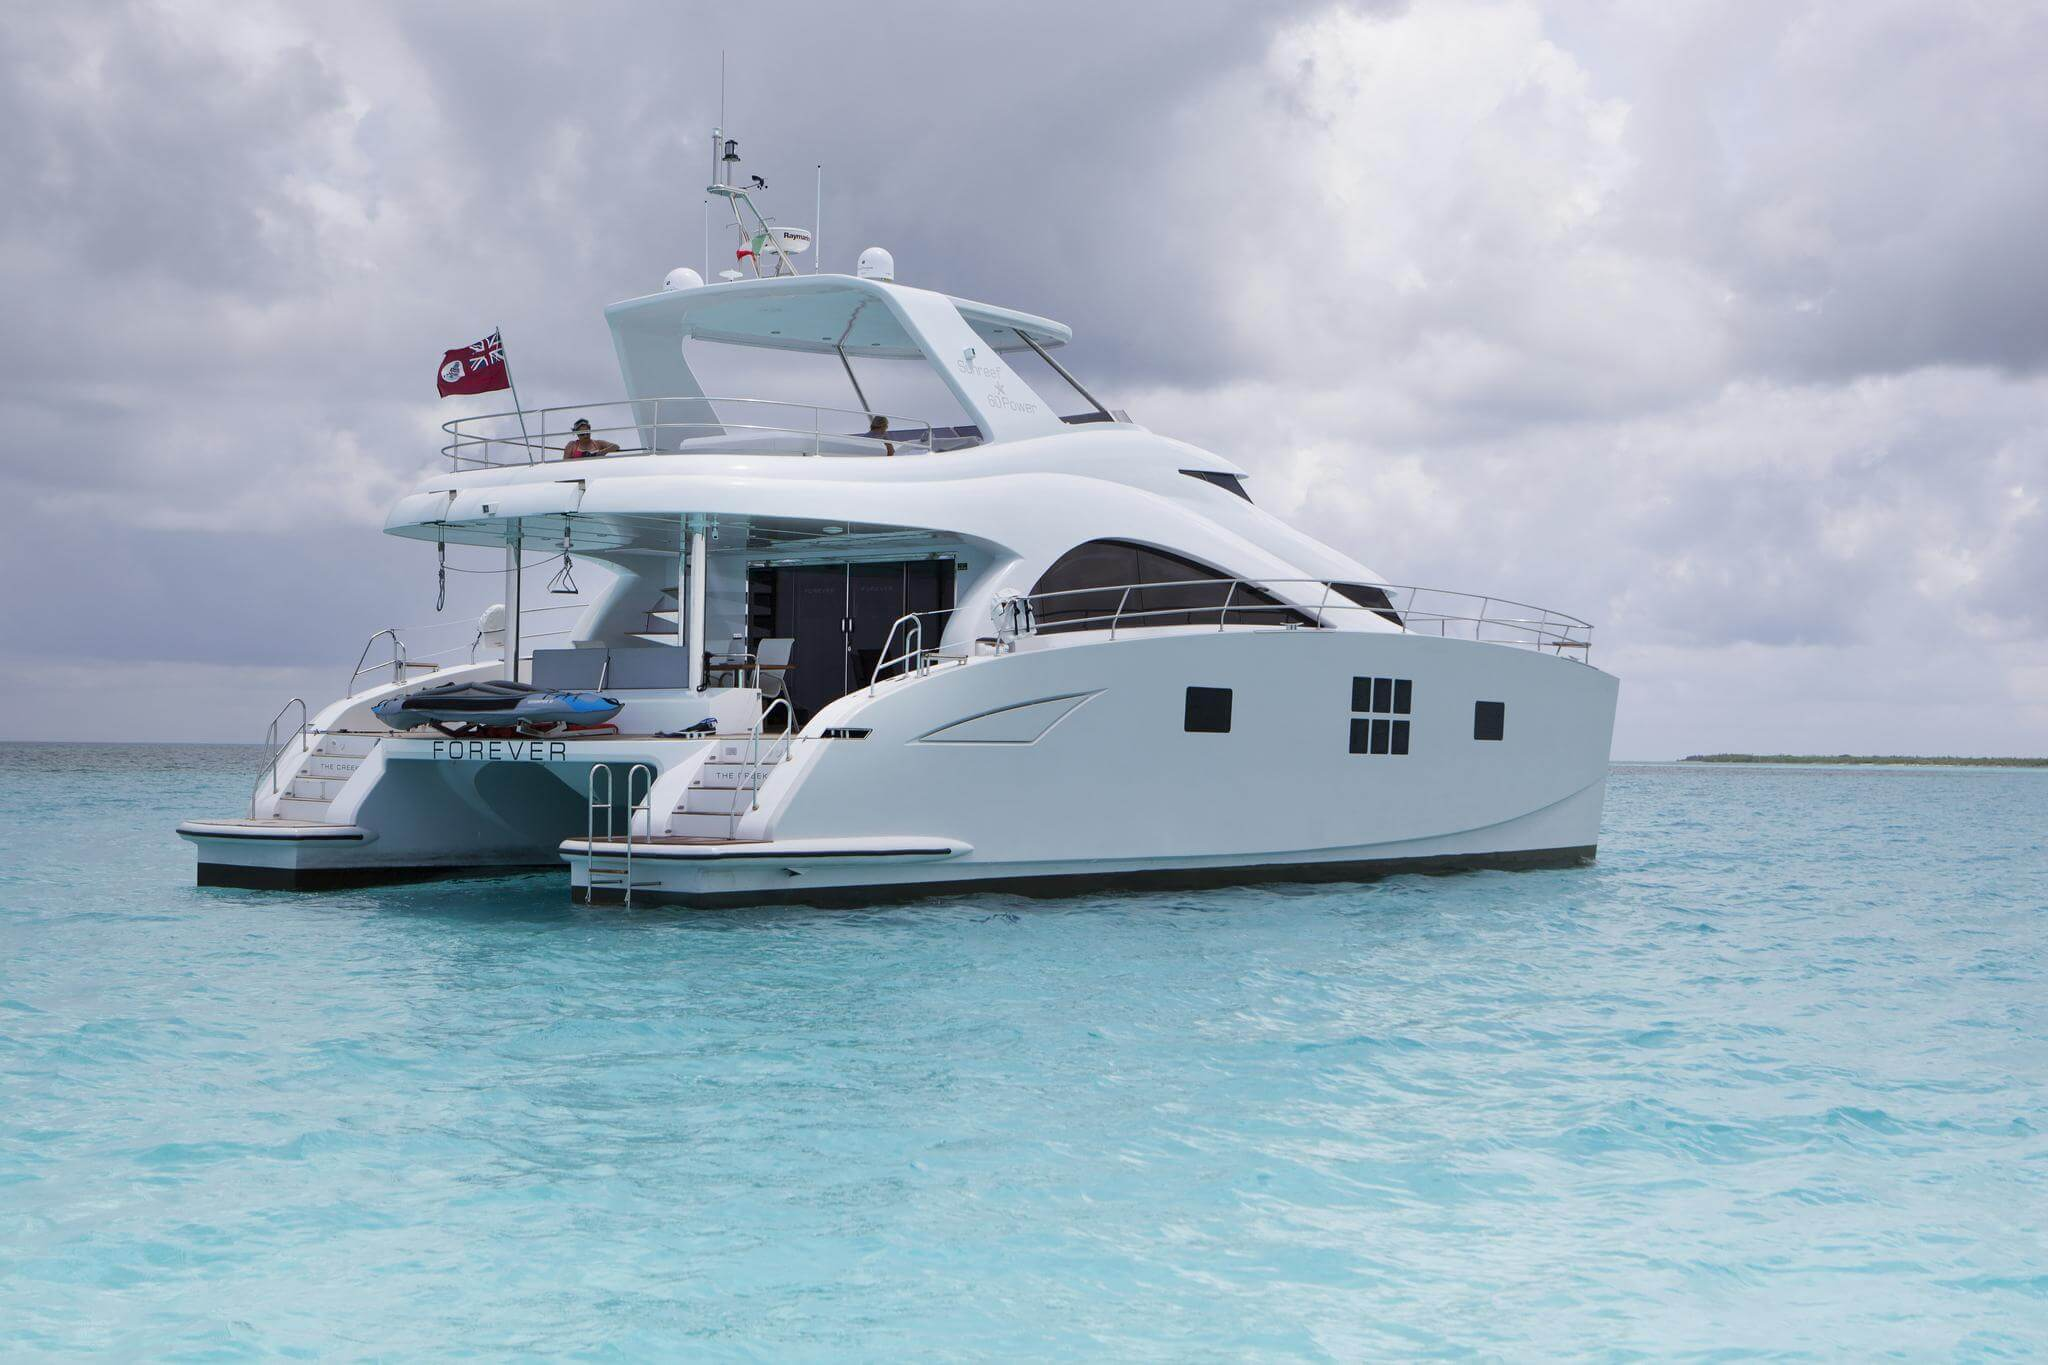 1571_sunreefcatamaranpower601502886331.jpg